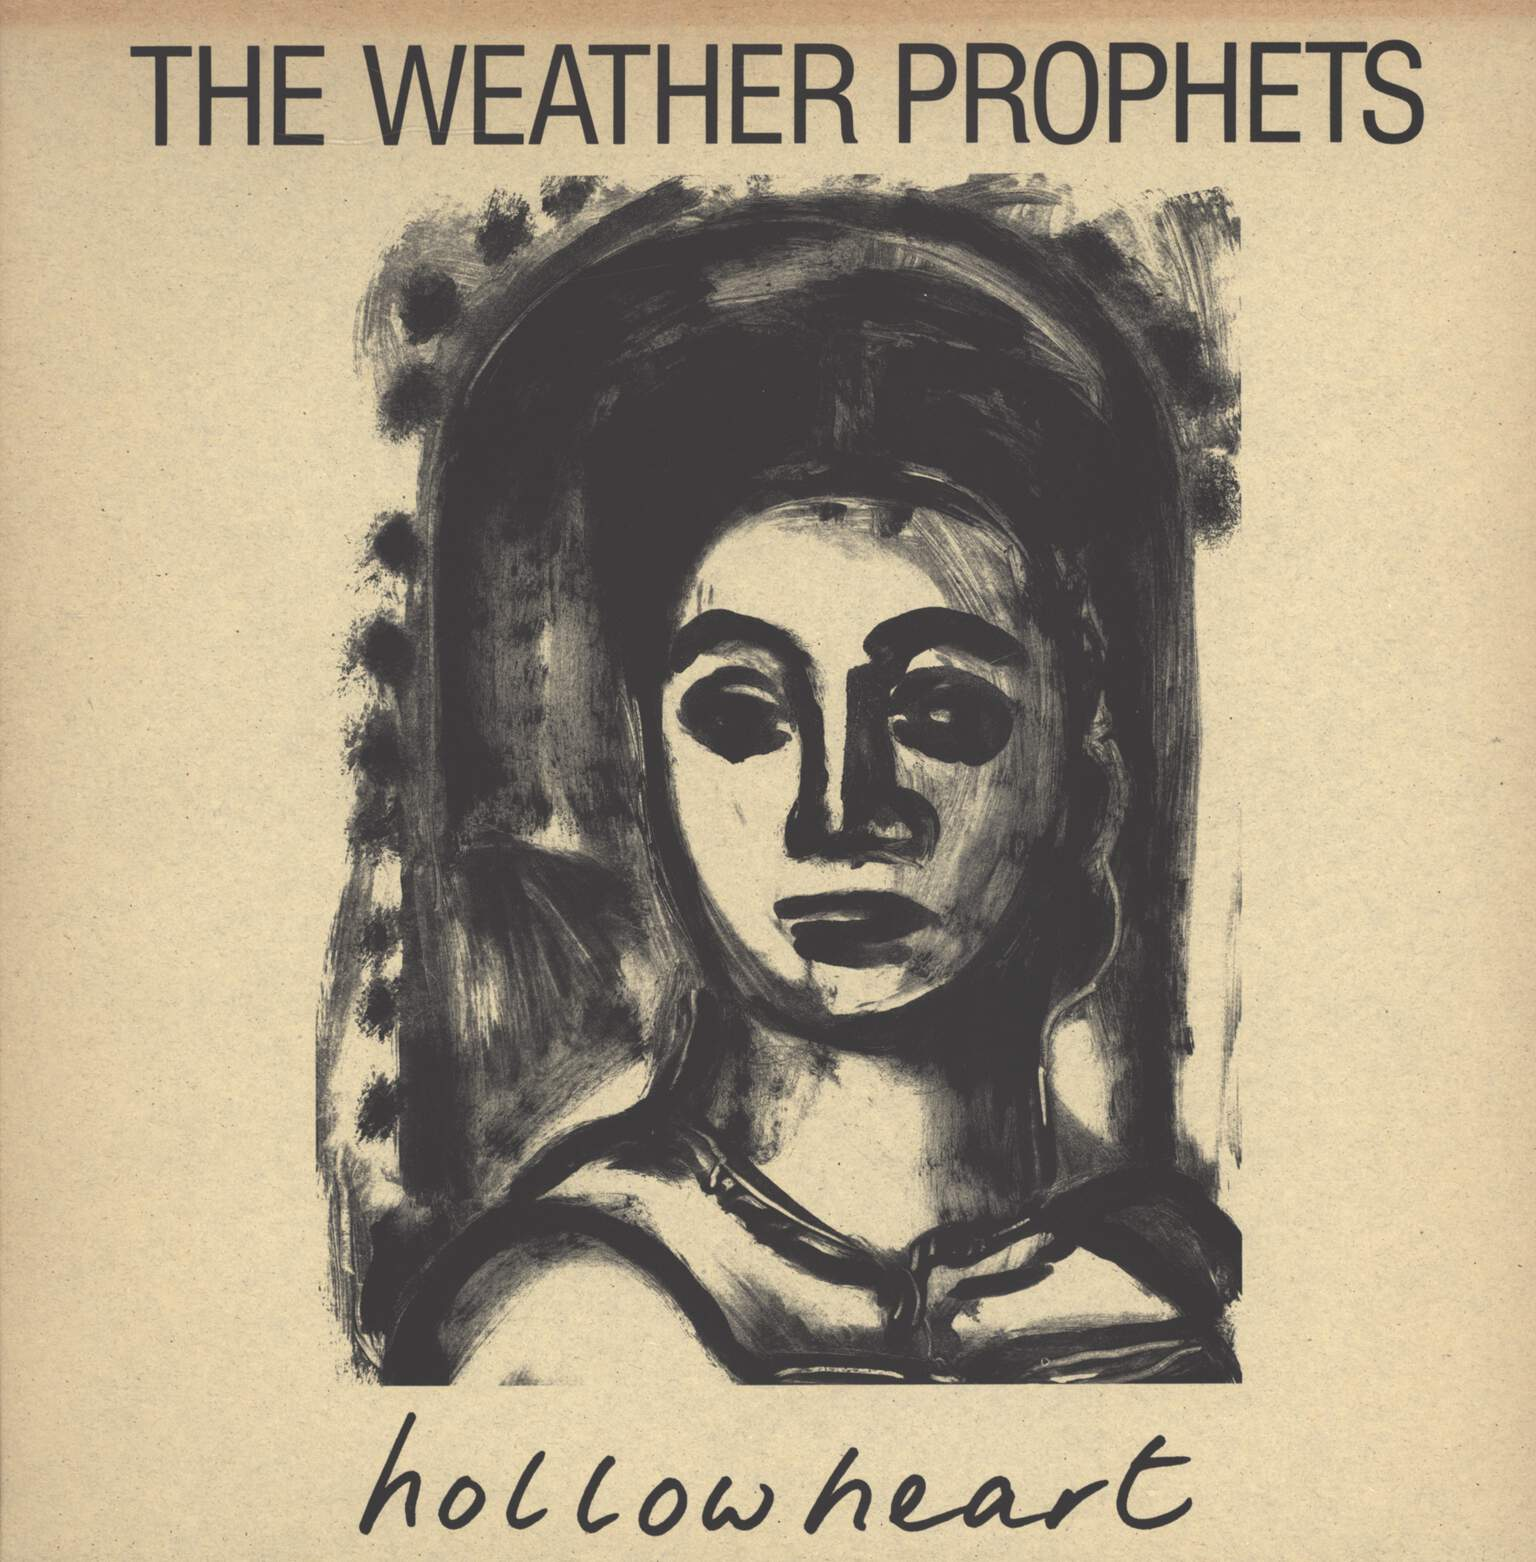 "The Weather Prophets: Hollow Heart, 12"" Maxi Single (Vinyl)"